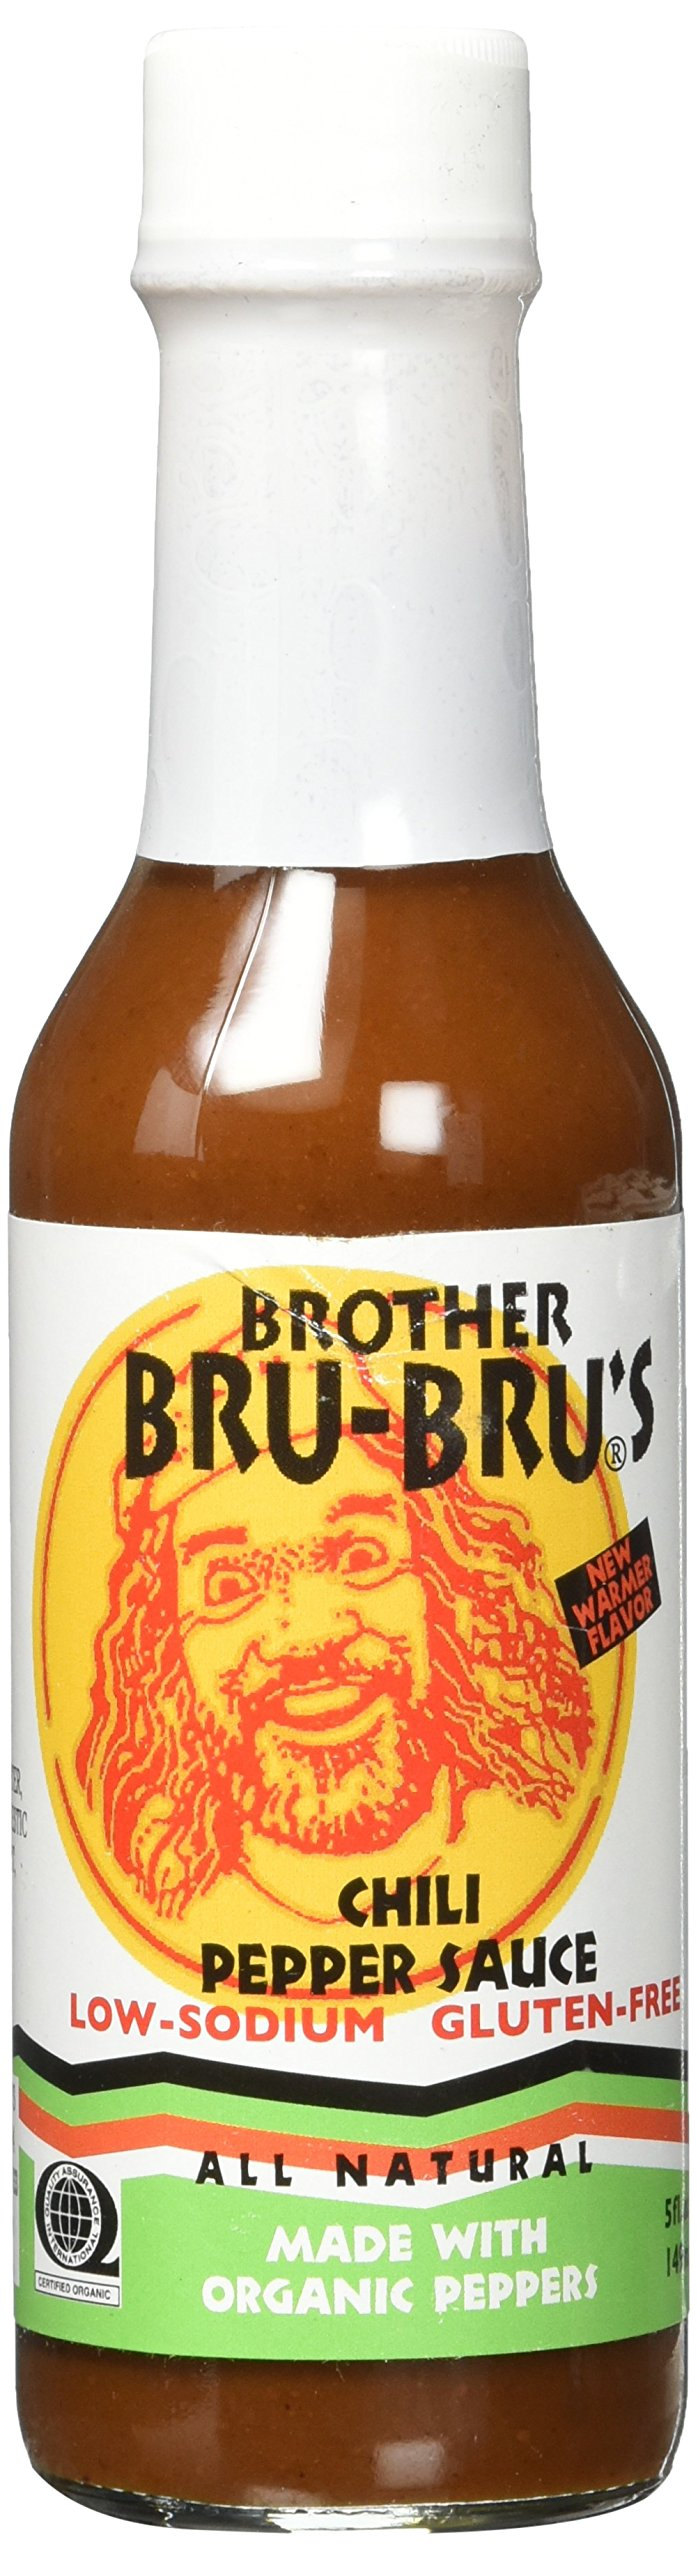 Brother Bear Bru's Organic African Chili Pepper Sauce Spice, 5 Ounce